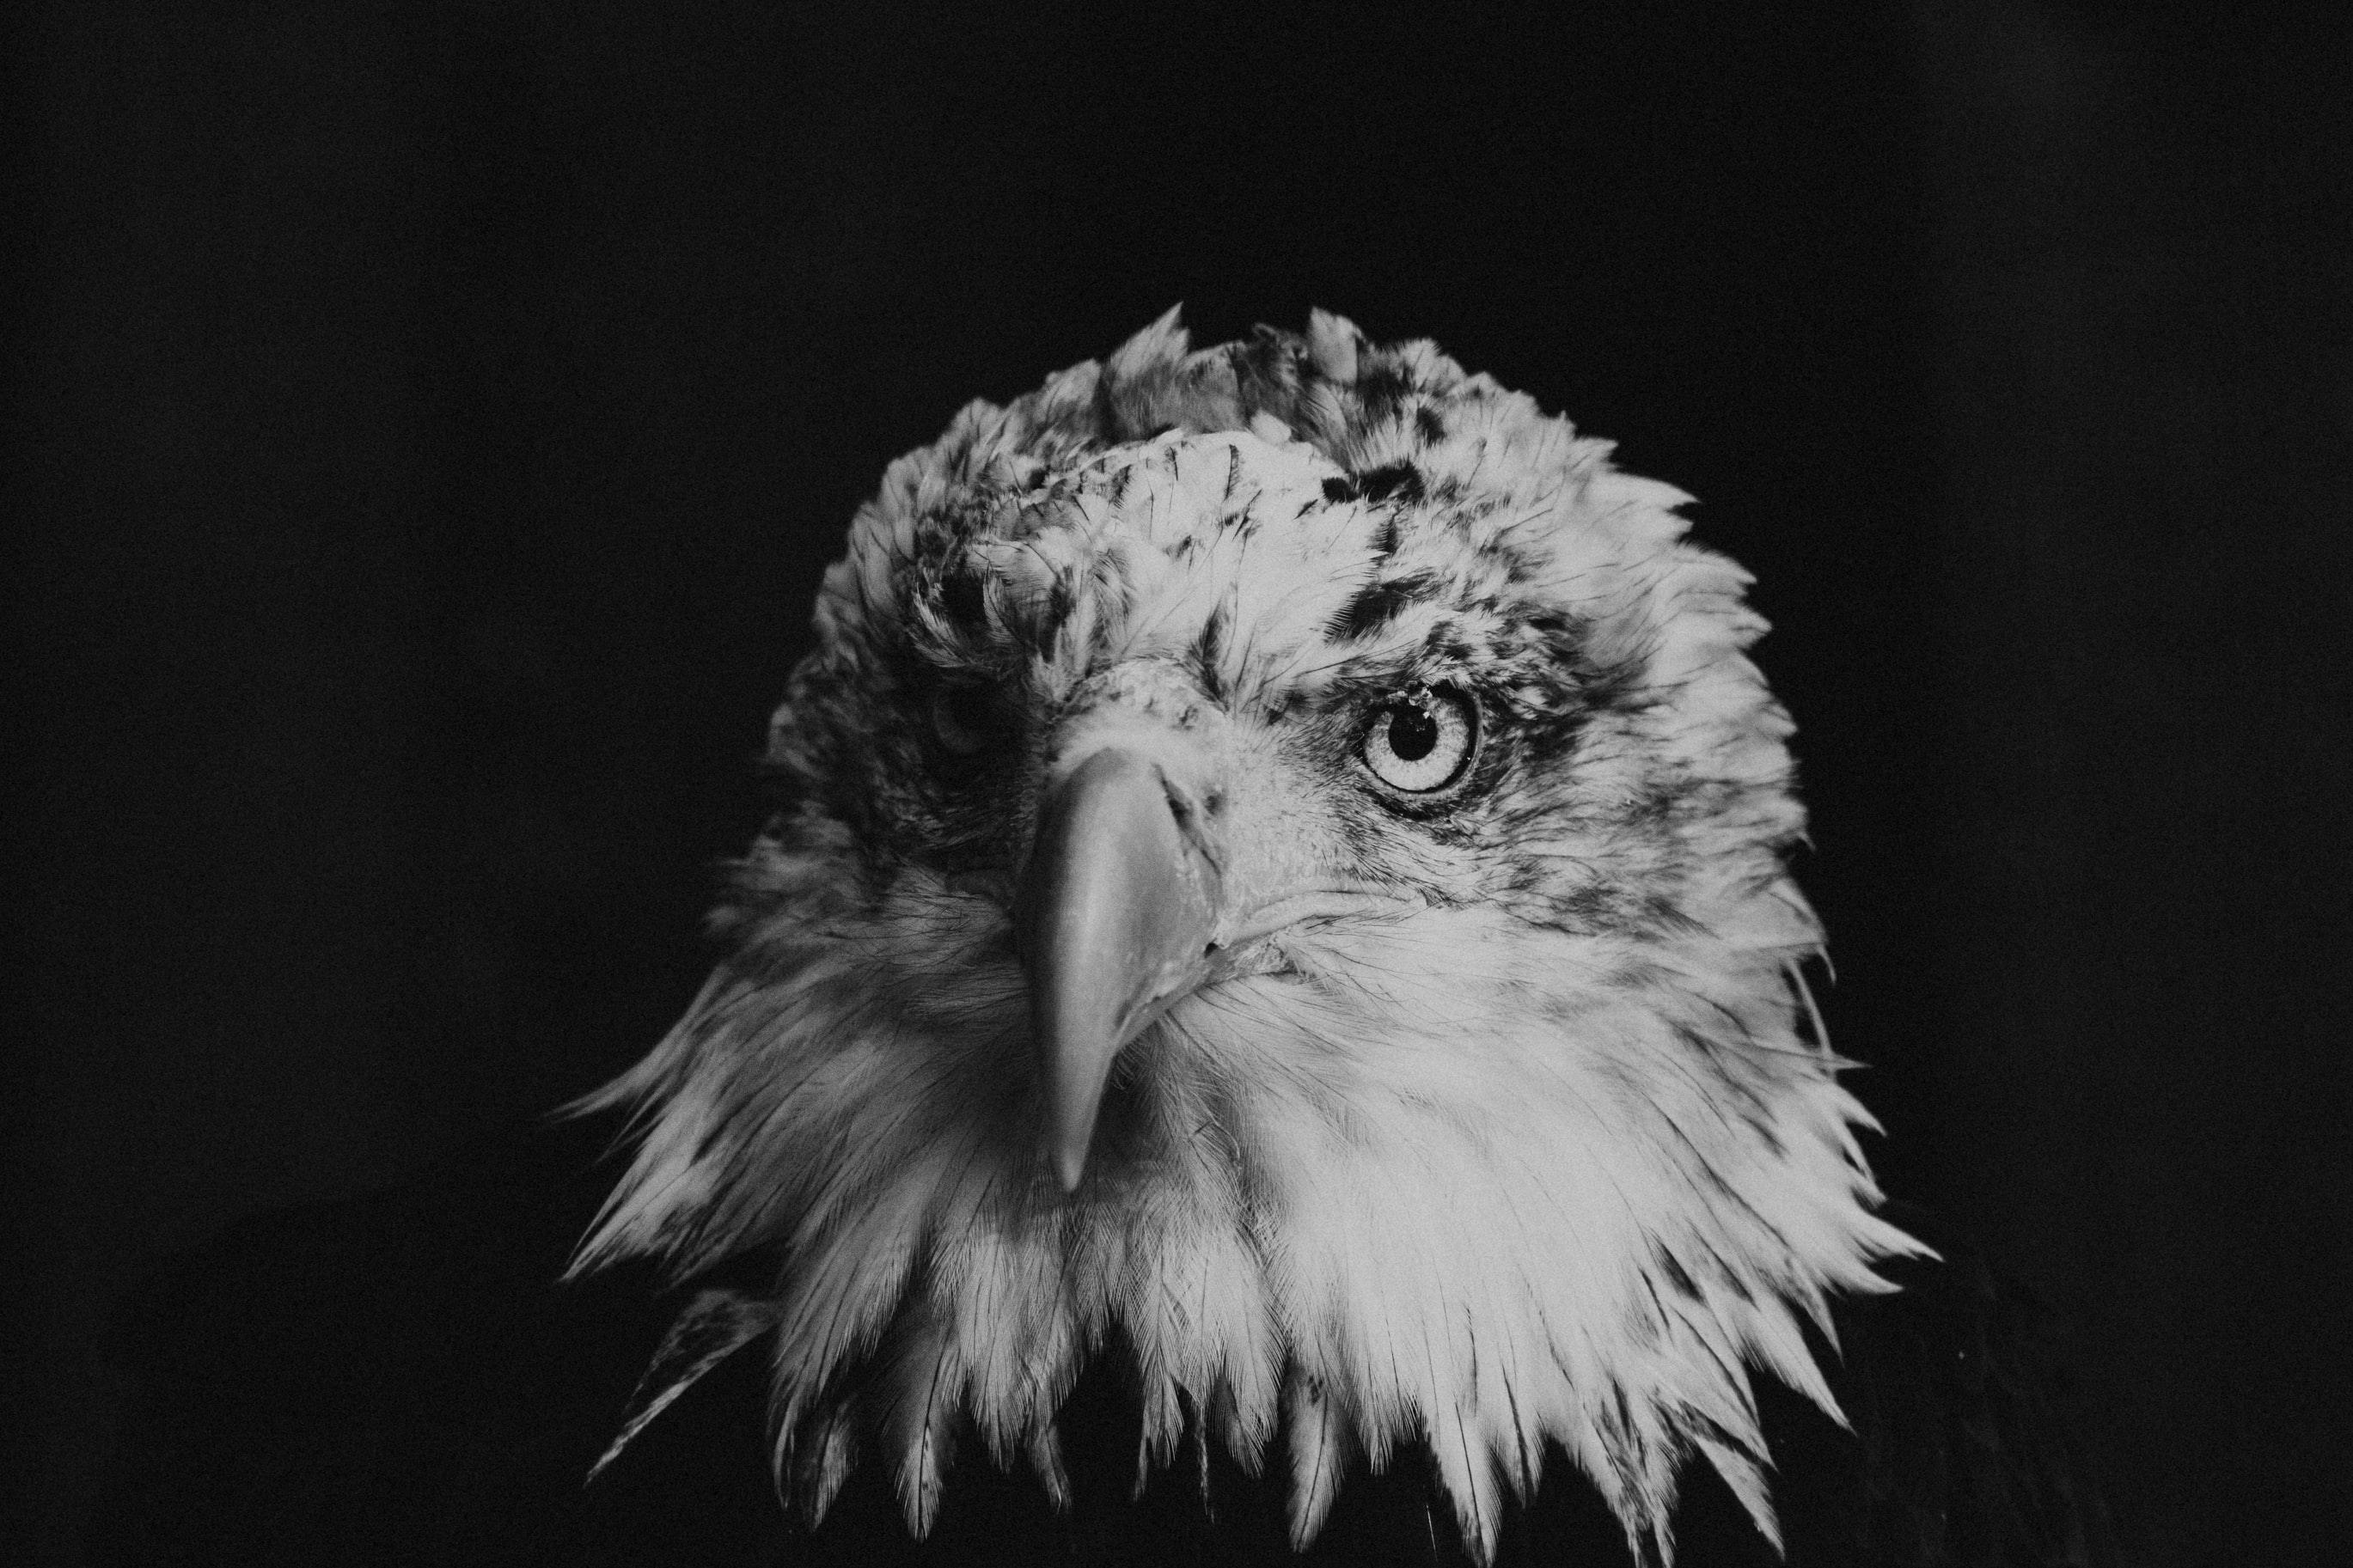 bald eagle greyscale photography